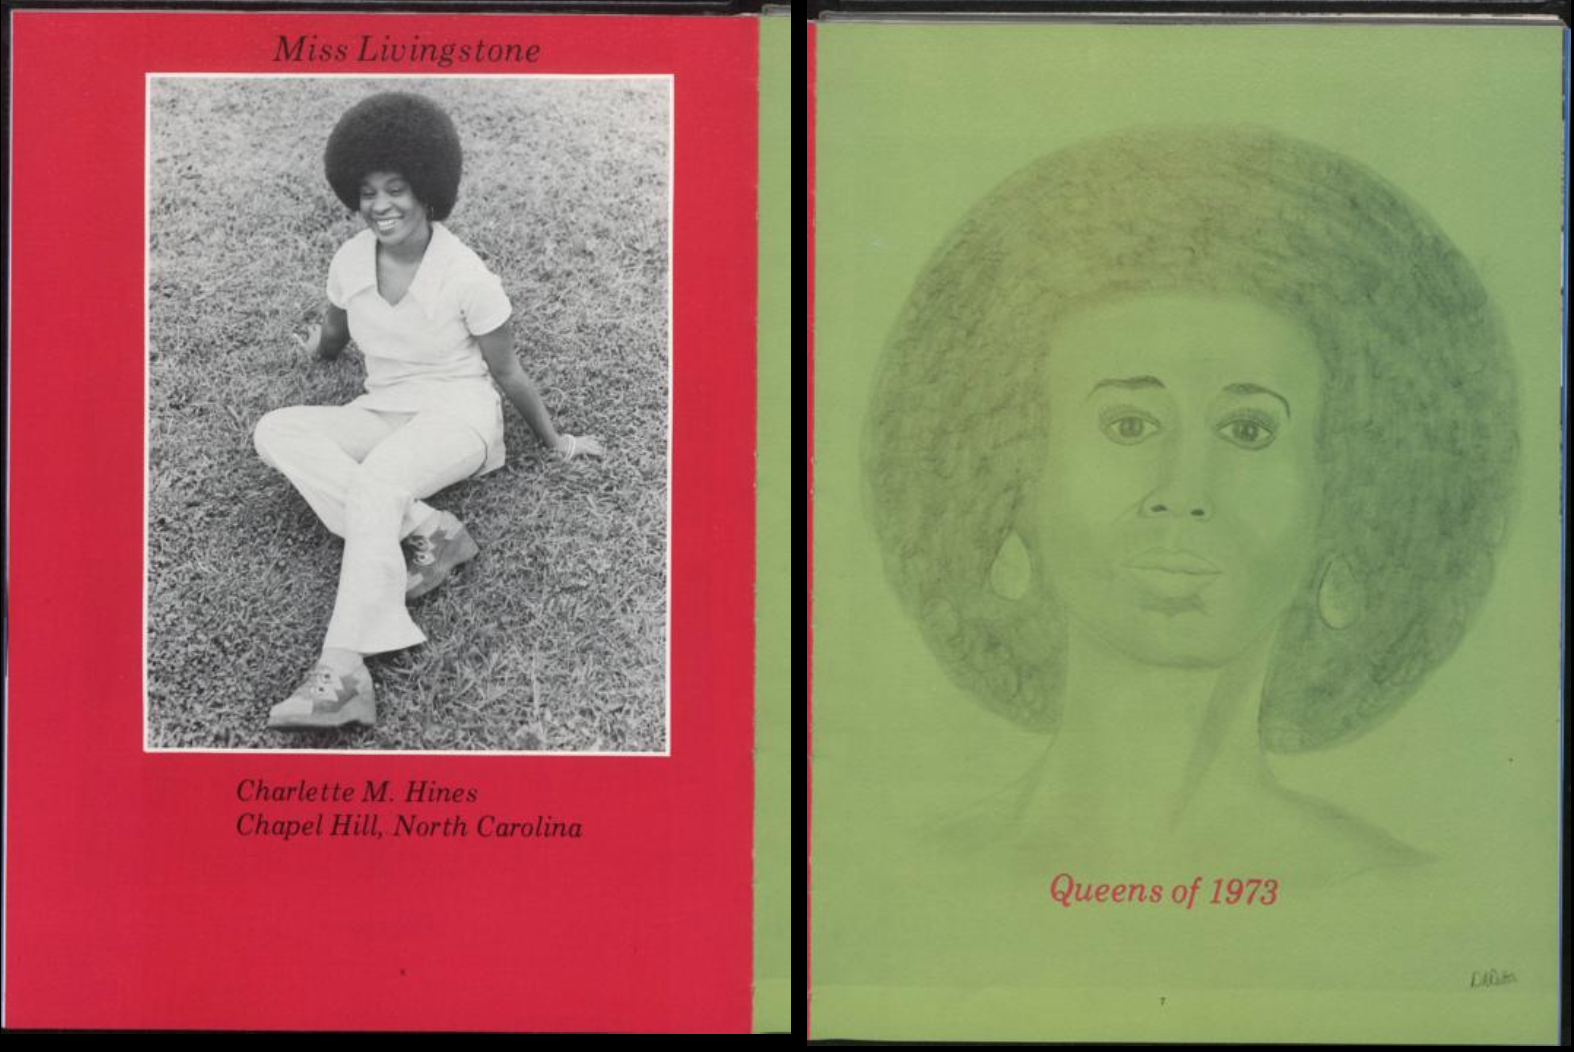 "Two-page spread from the 1973 Livingstone College yearbook The Livingstonian. The left page features a black-and-white photo of Miss Livingstone, Charlette M. Hines, against a red background. The right page shows a drawing of a head of a Black woman with an afro and large earrings on a green background; the text below the drawings states ""Queens of 1973""."